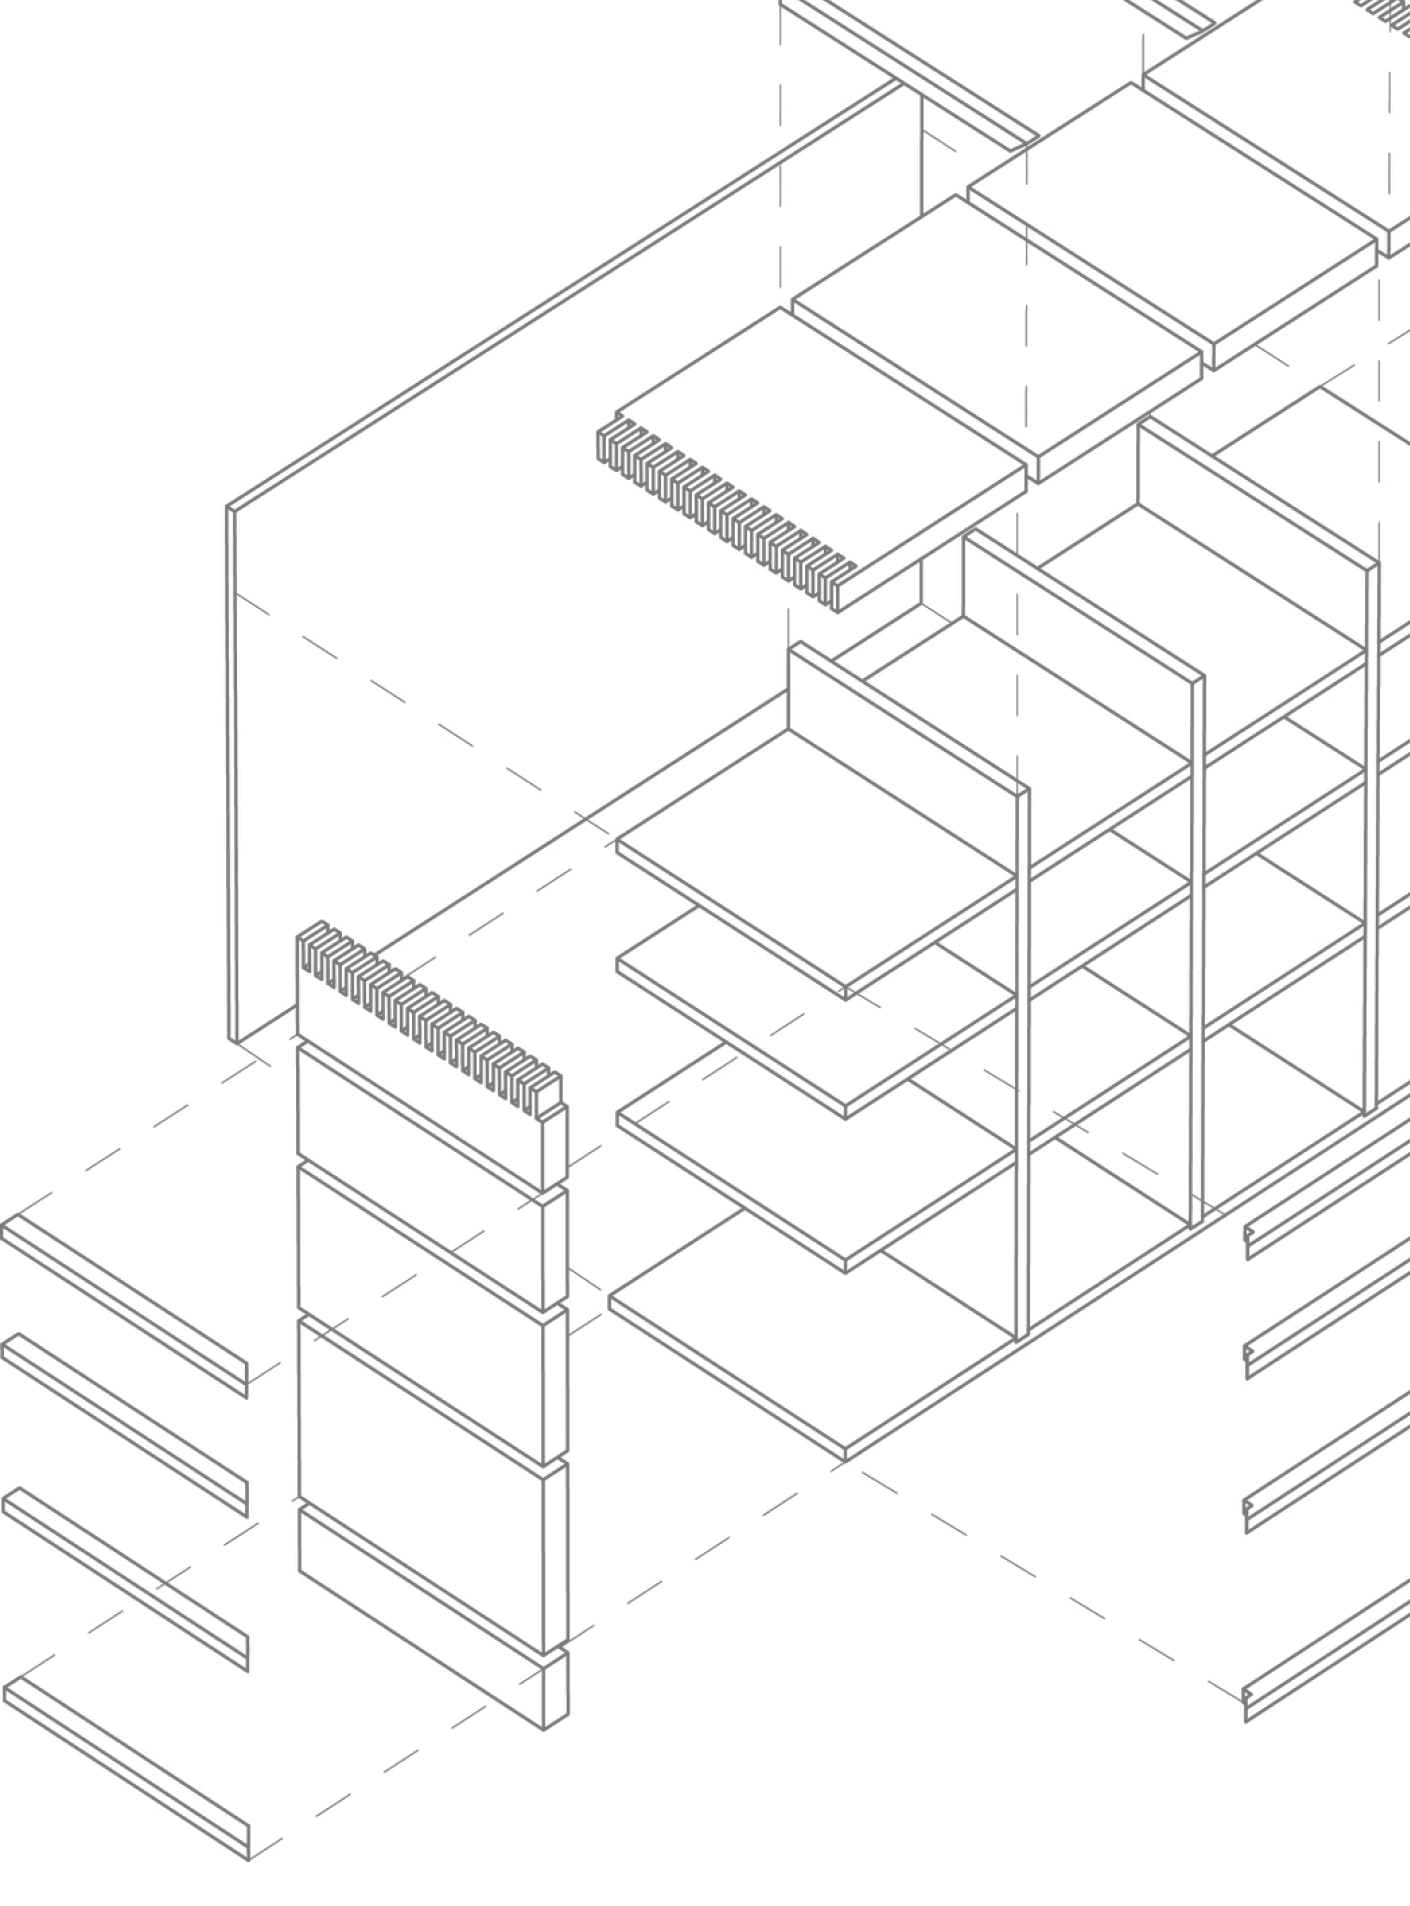 Display schematic drawing